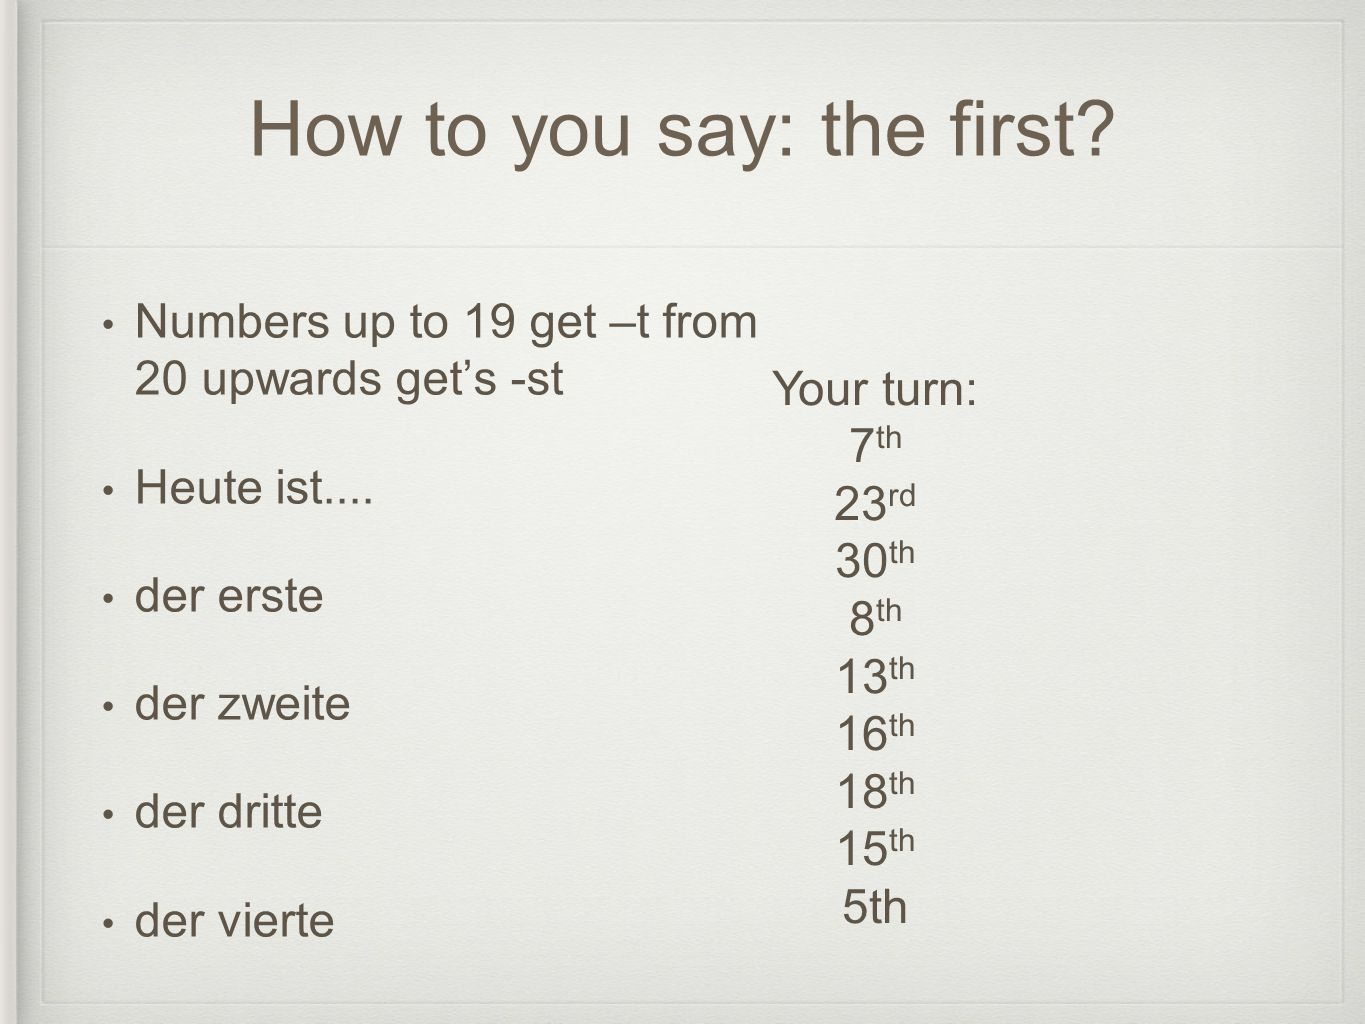 How to you say: the first.Numbers up to 19 get –t from 20 upwards gets -st Heute ist....